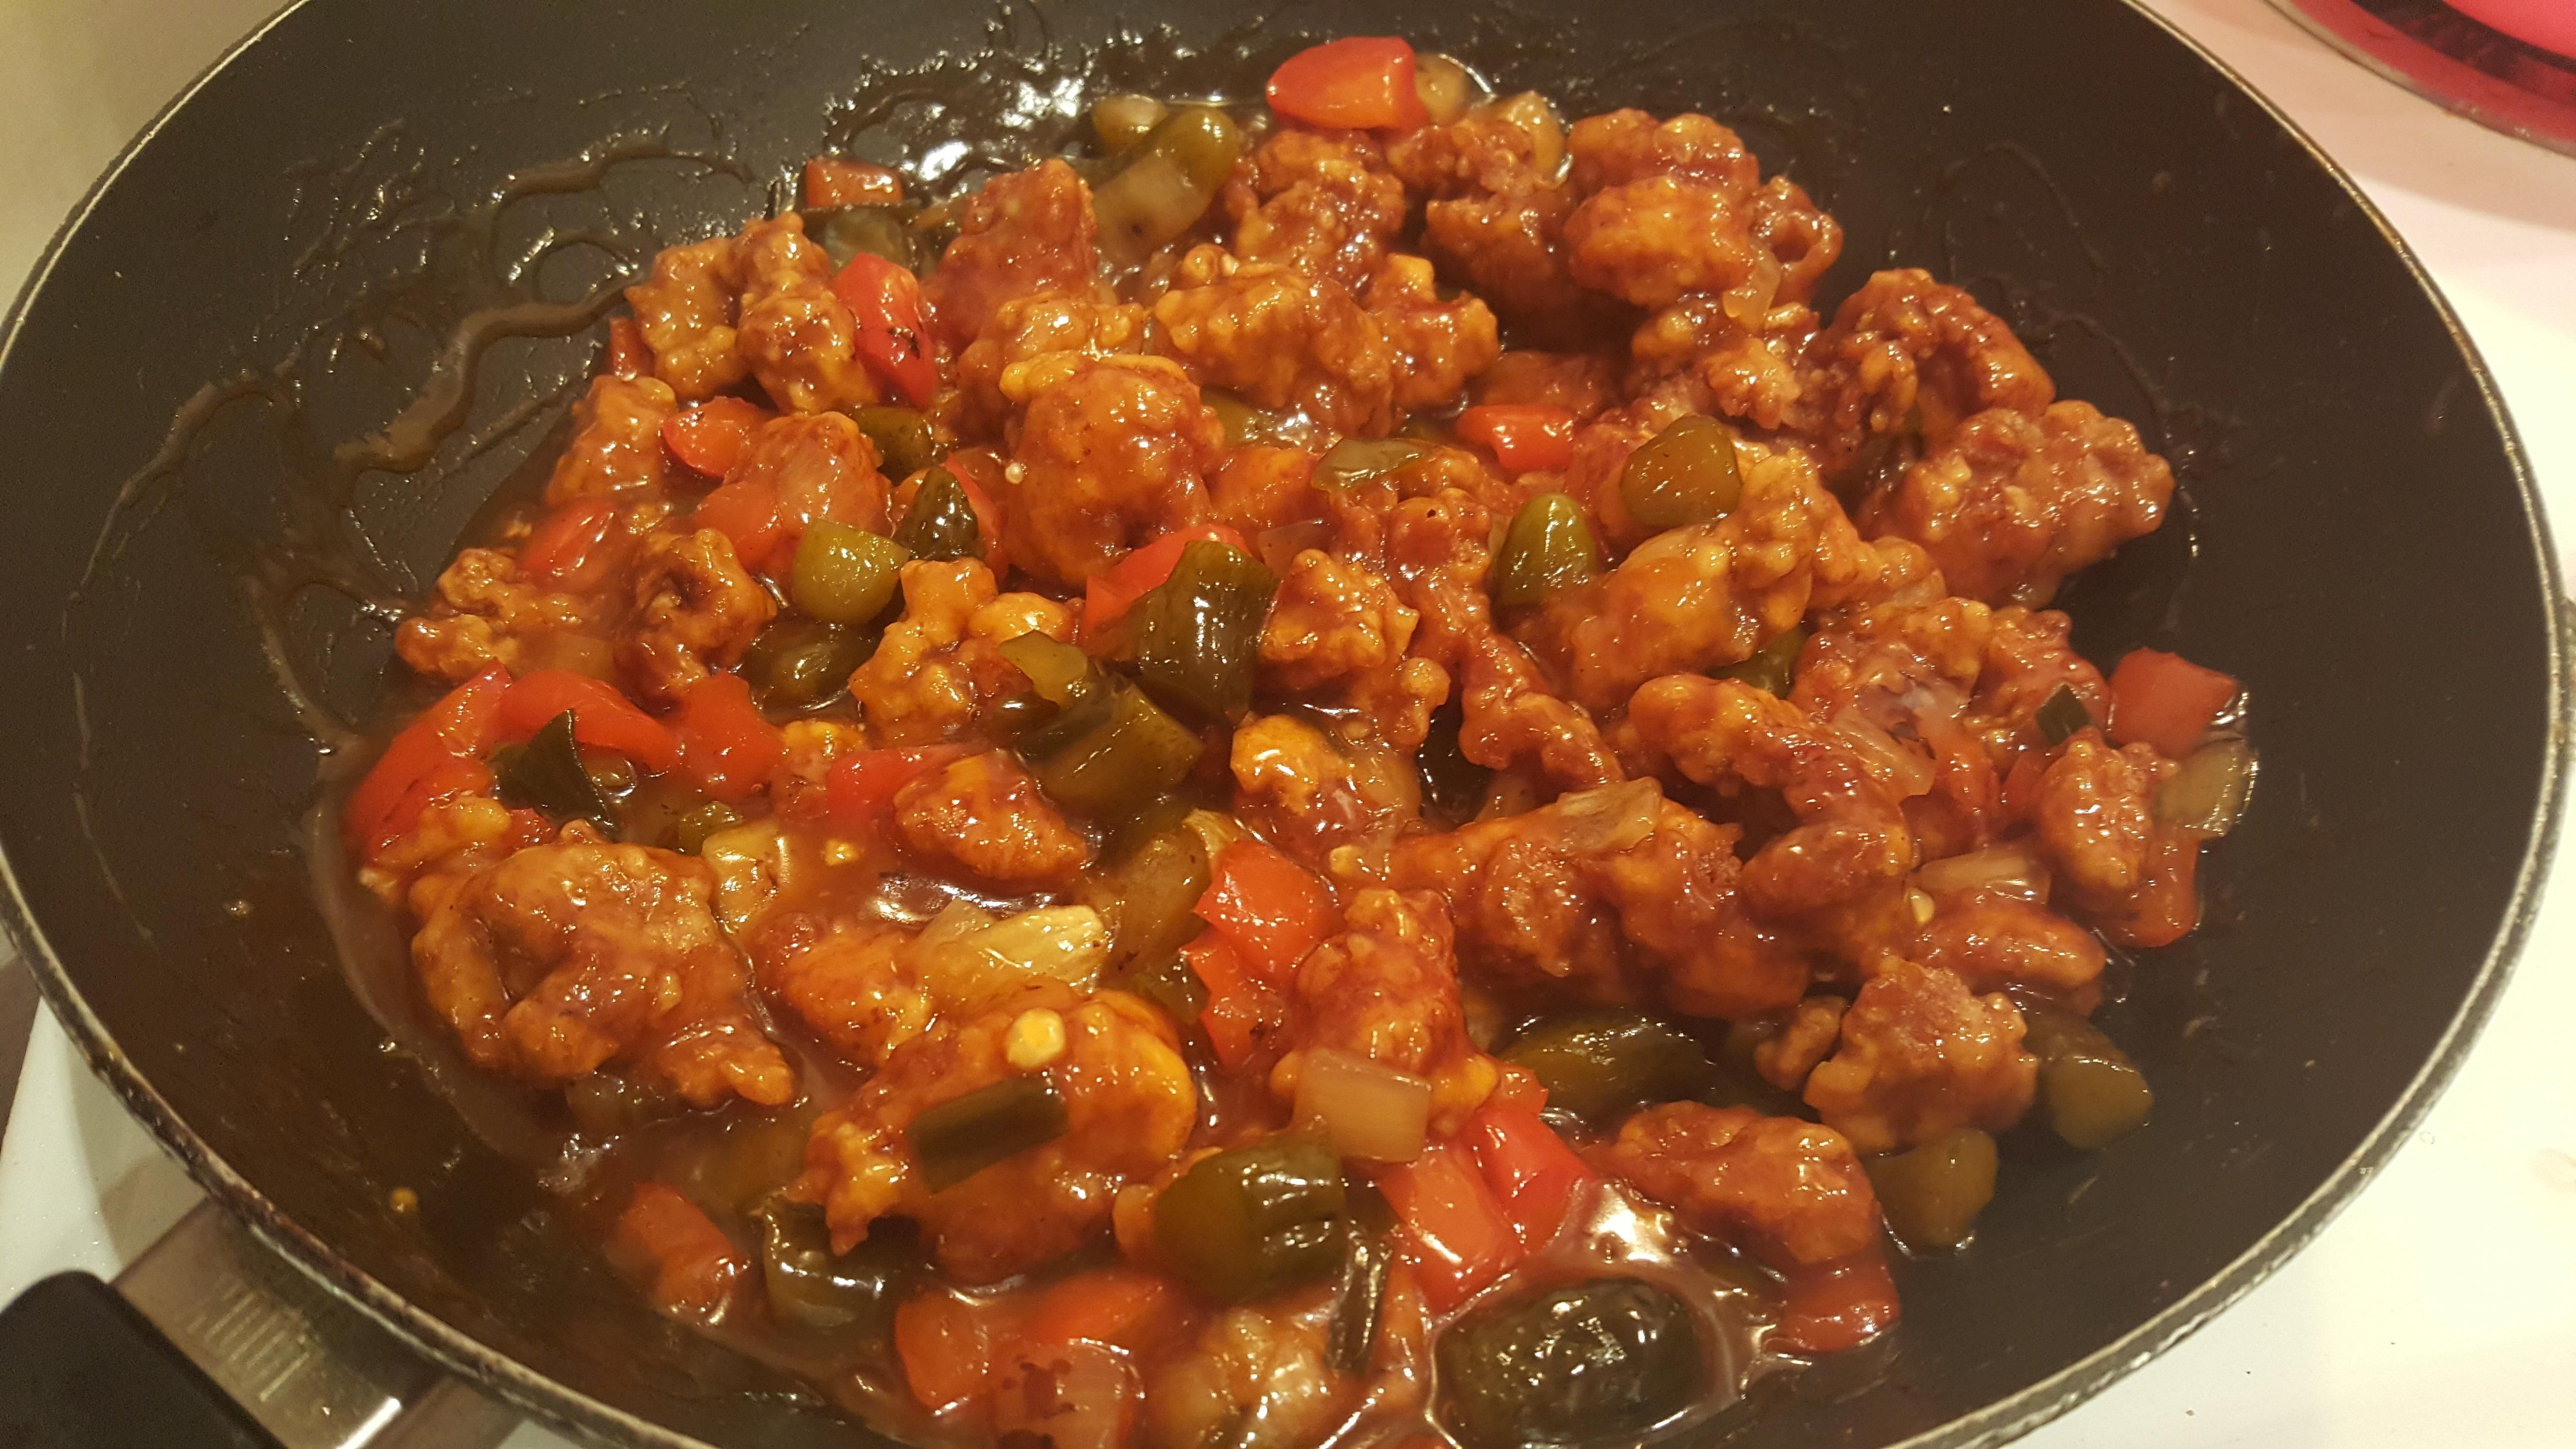 Sweet sour pork homemade yummy pinterest sweet sour pork homemade forumfinder Image collections